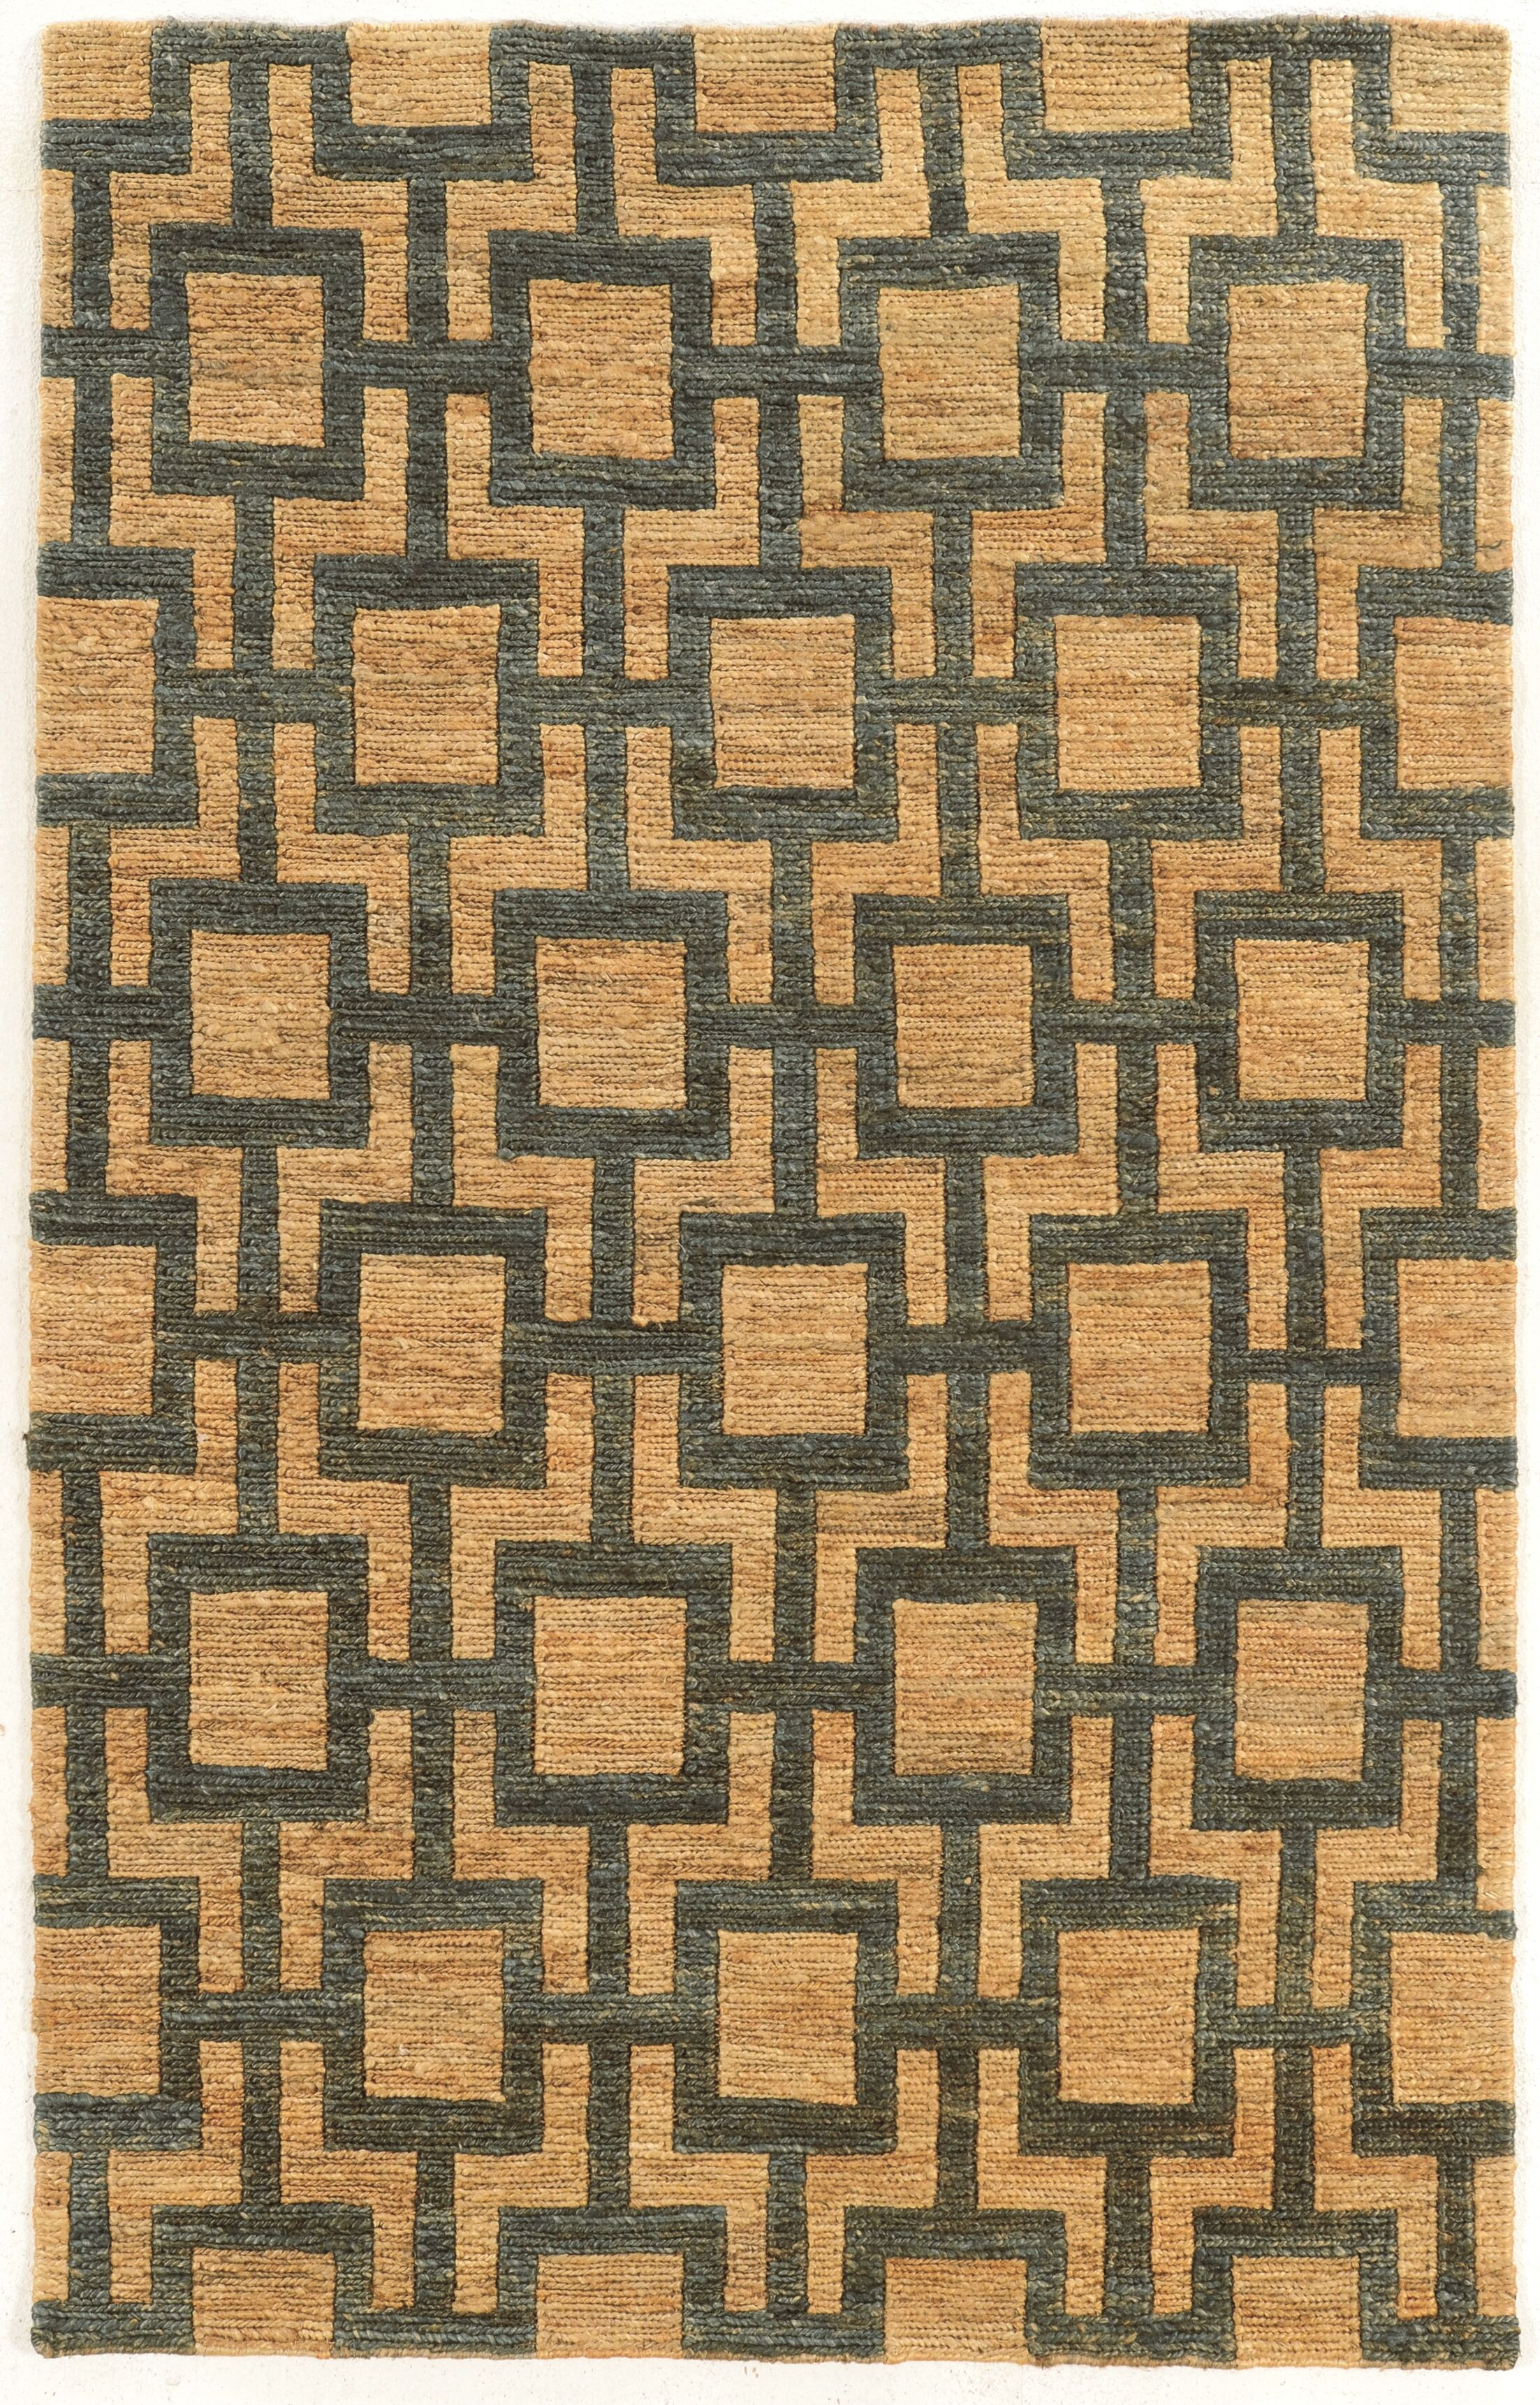 Chloraka Hand-Knotted Beige/Slate Area Rug Rug Size: Rectangle 2' x 3'